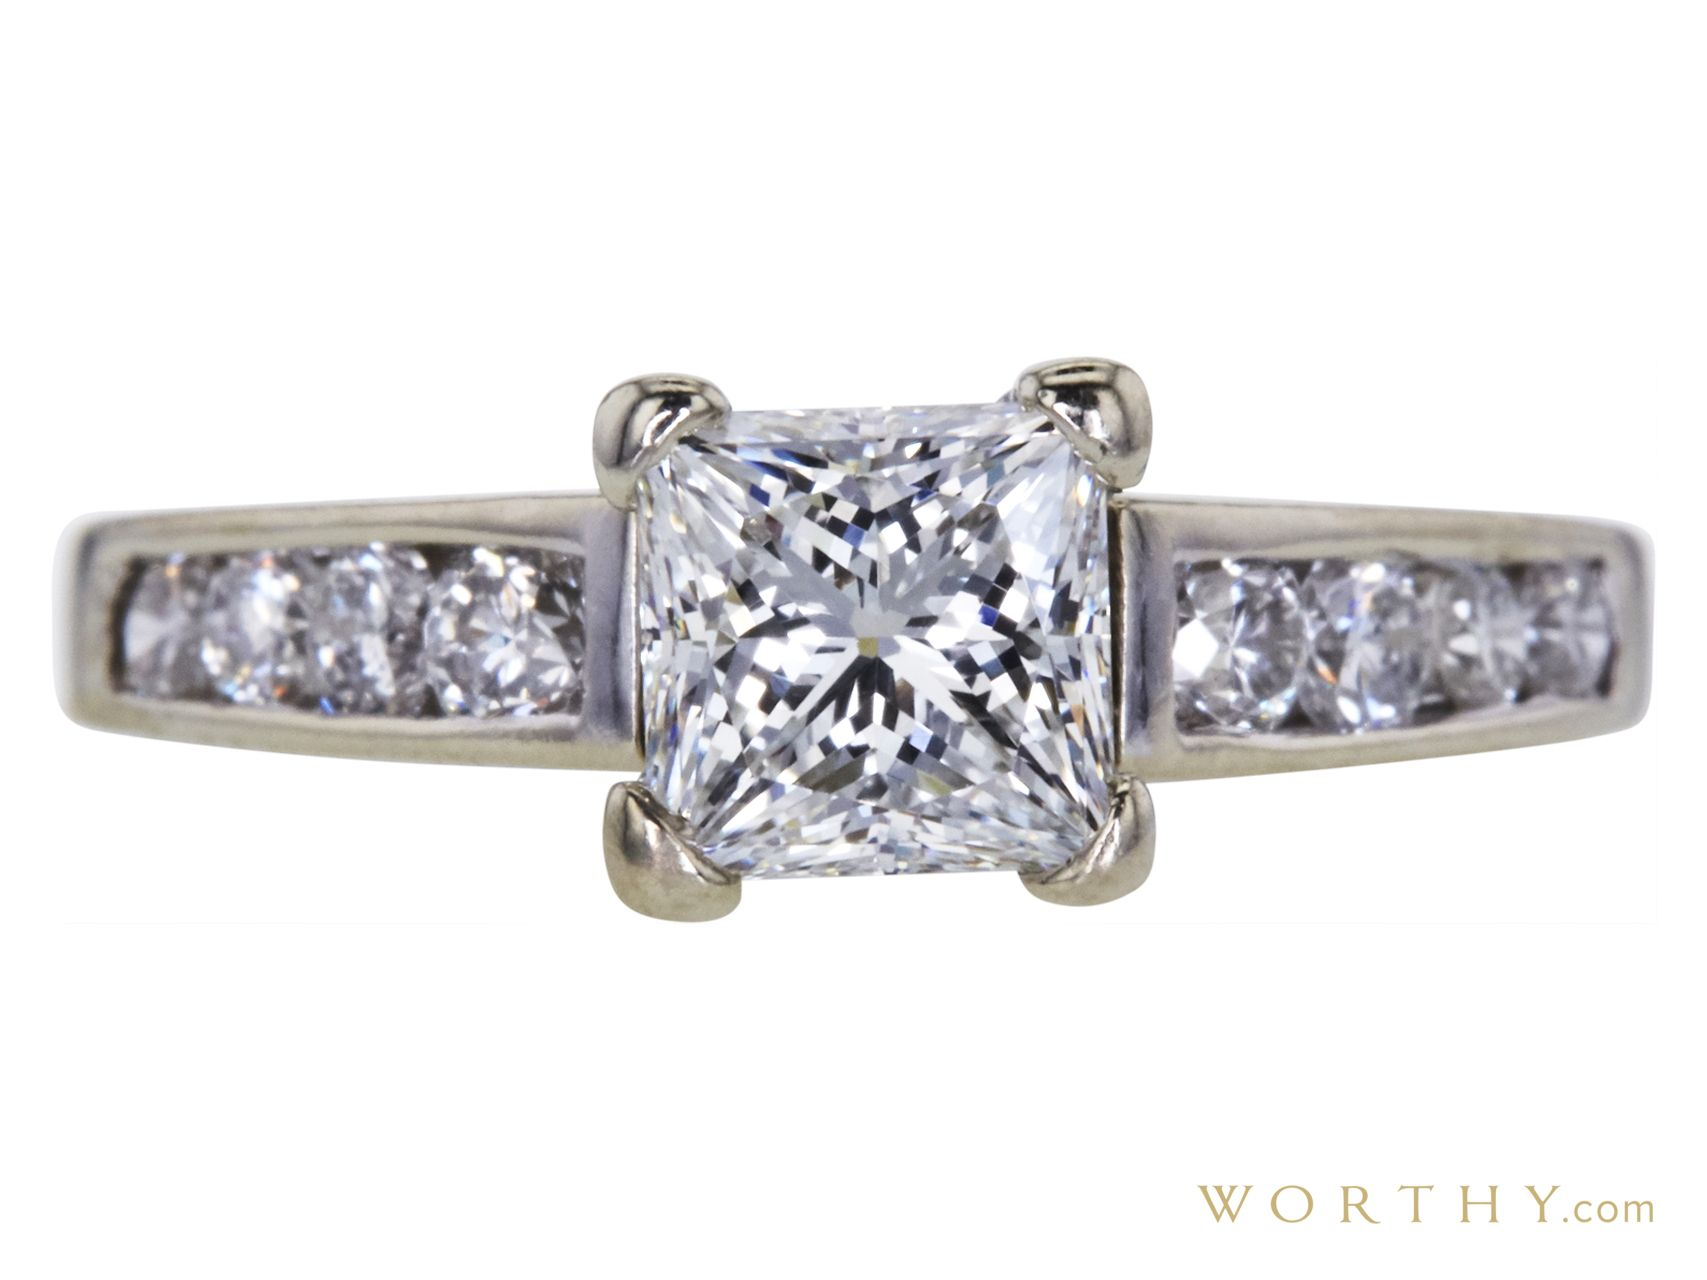 ct princess cut solitaire ring sold at auction for